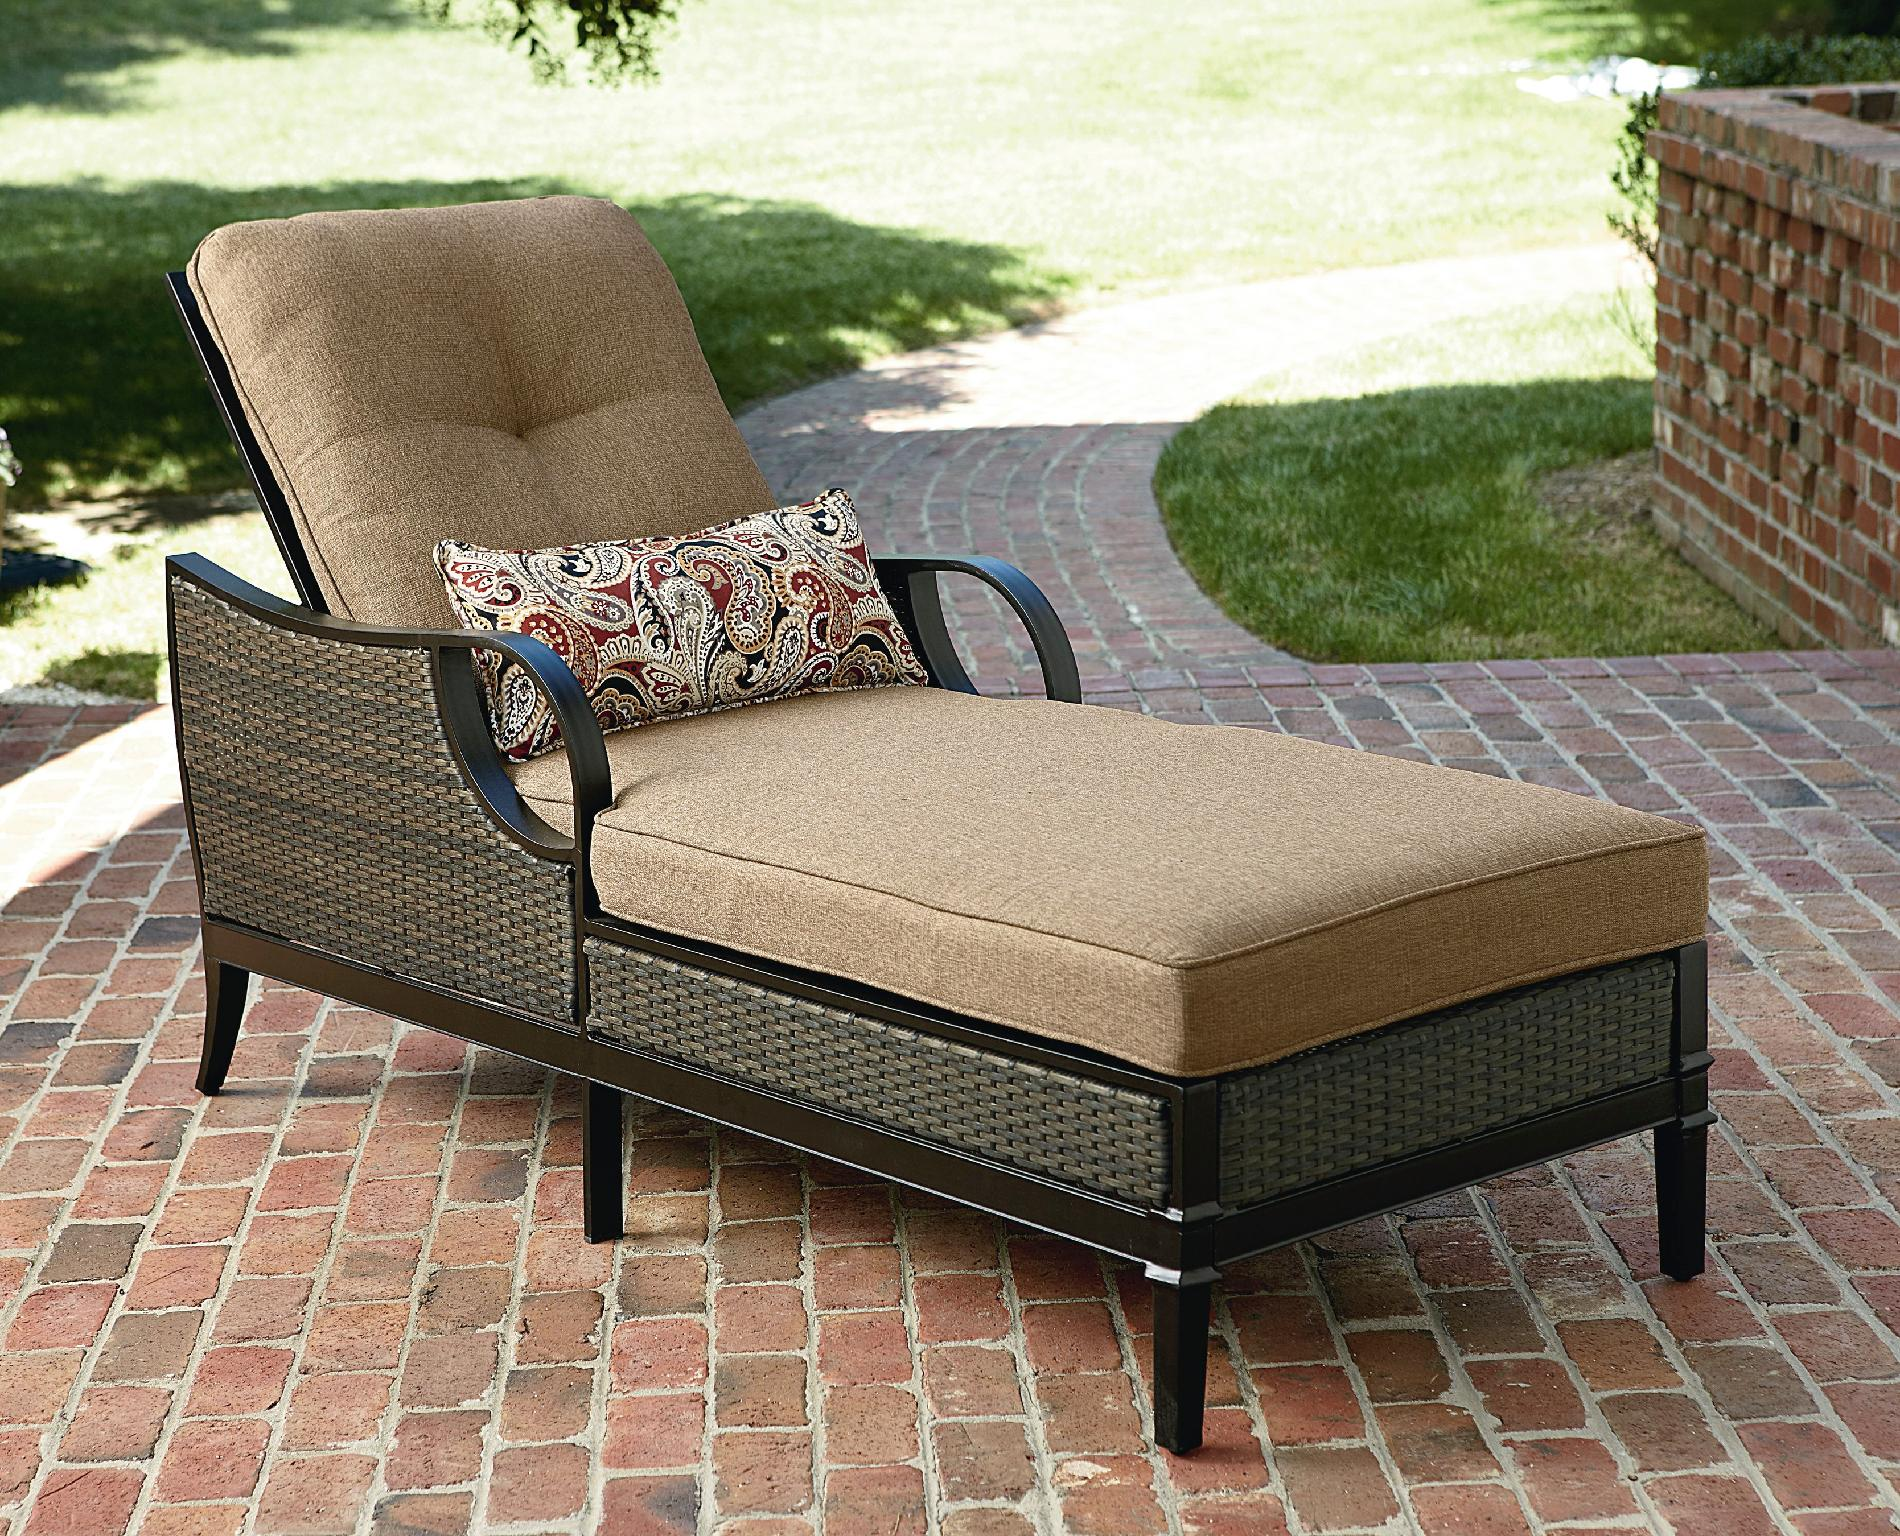 Elegant chaise lounge outdoor la-z-boy outdoor charlotte chaise lounge fnvmqyv